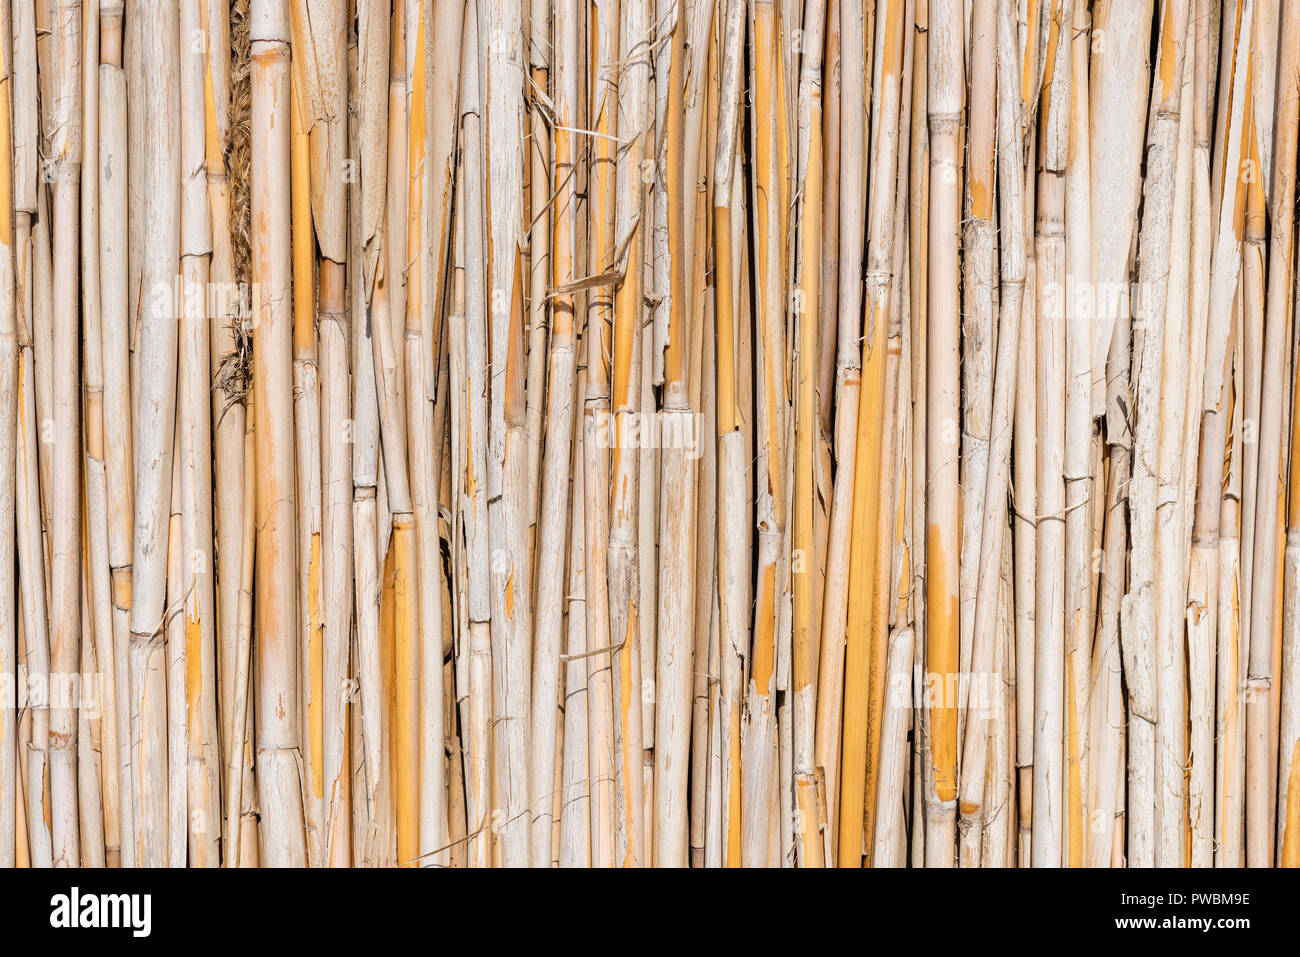 Sedge dry stems in row building fence material - Stock Image